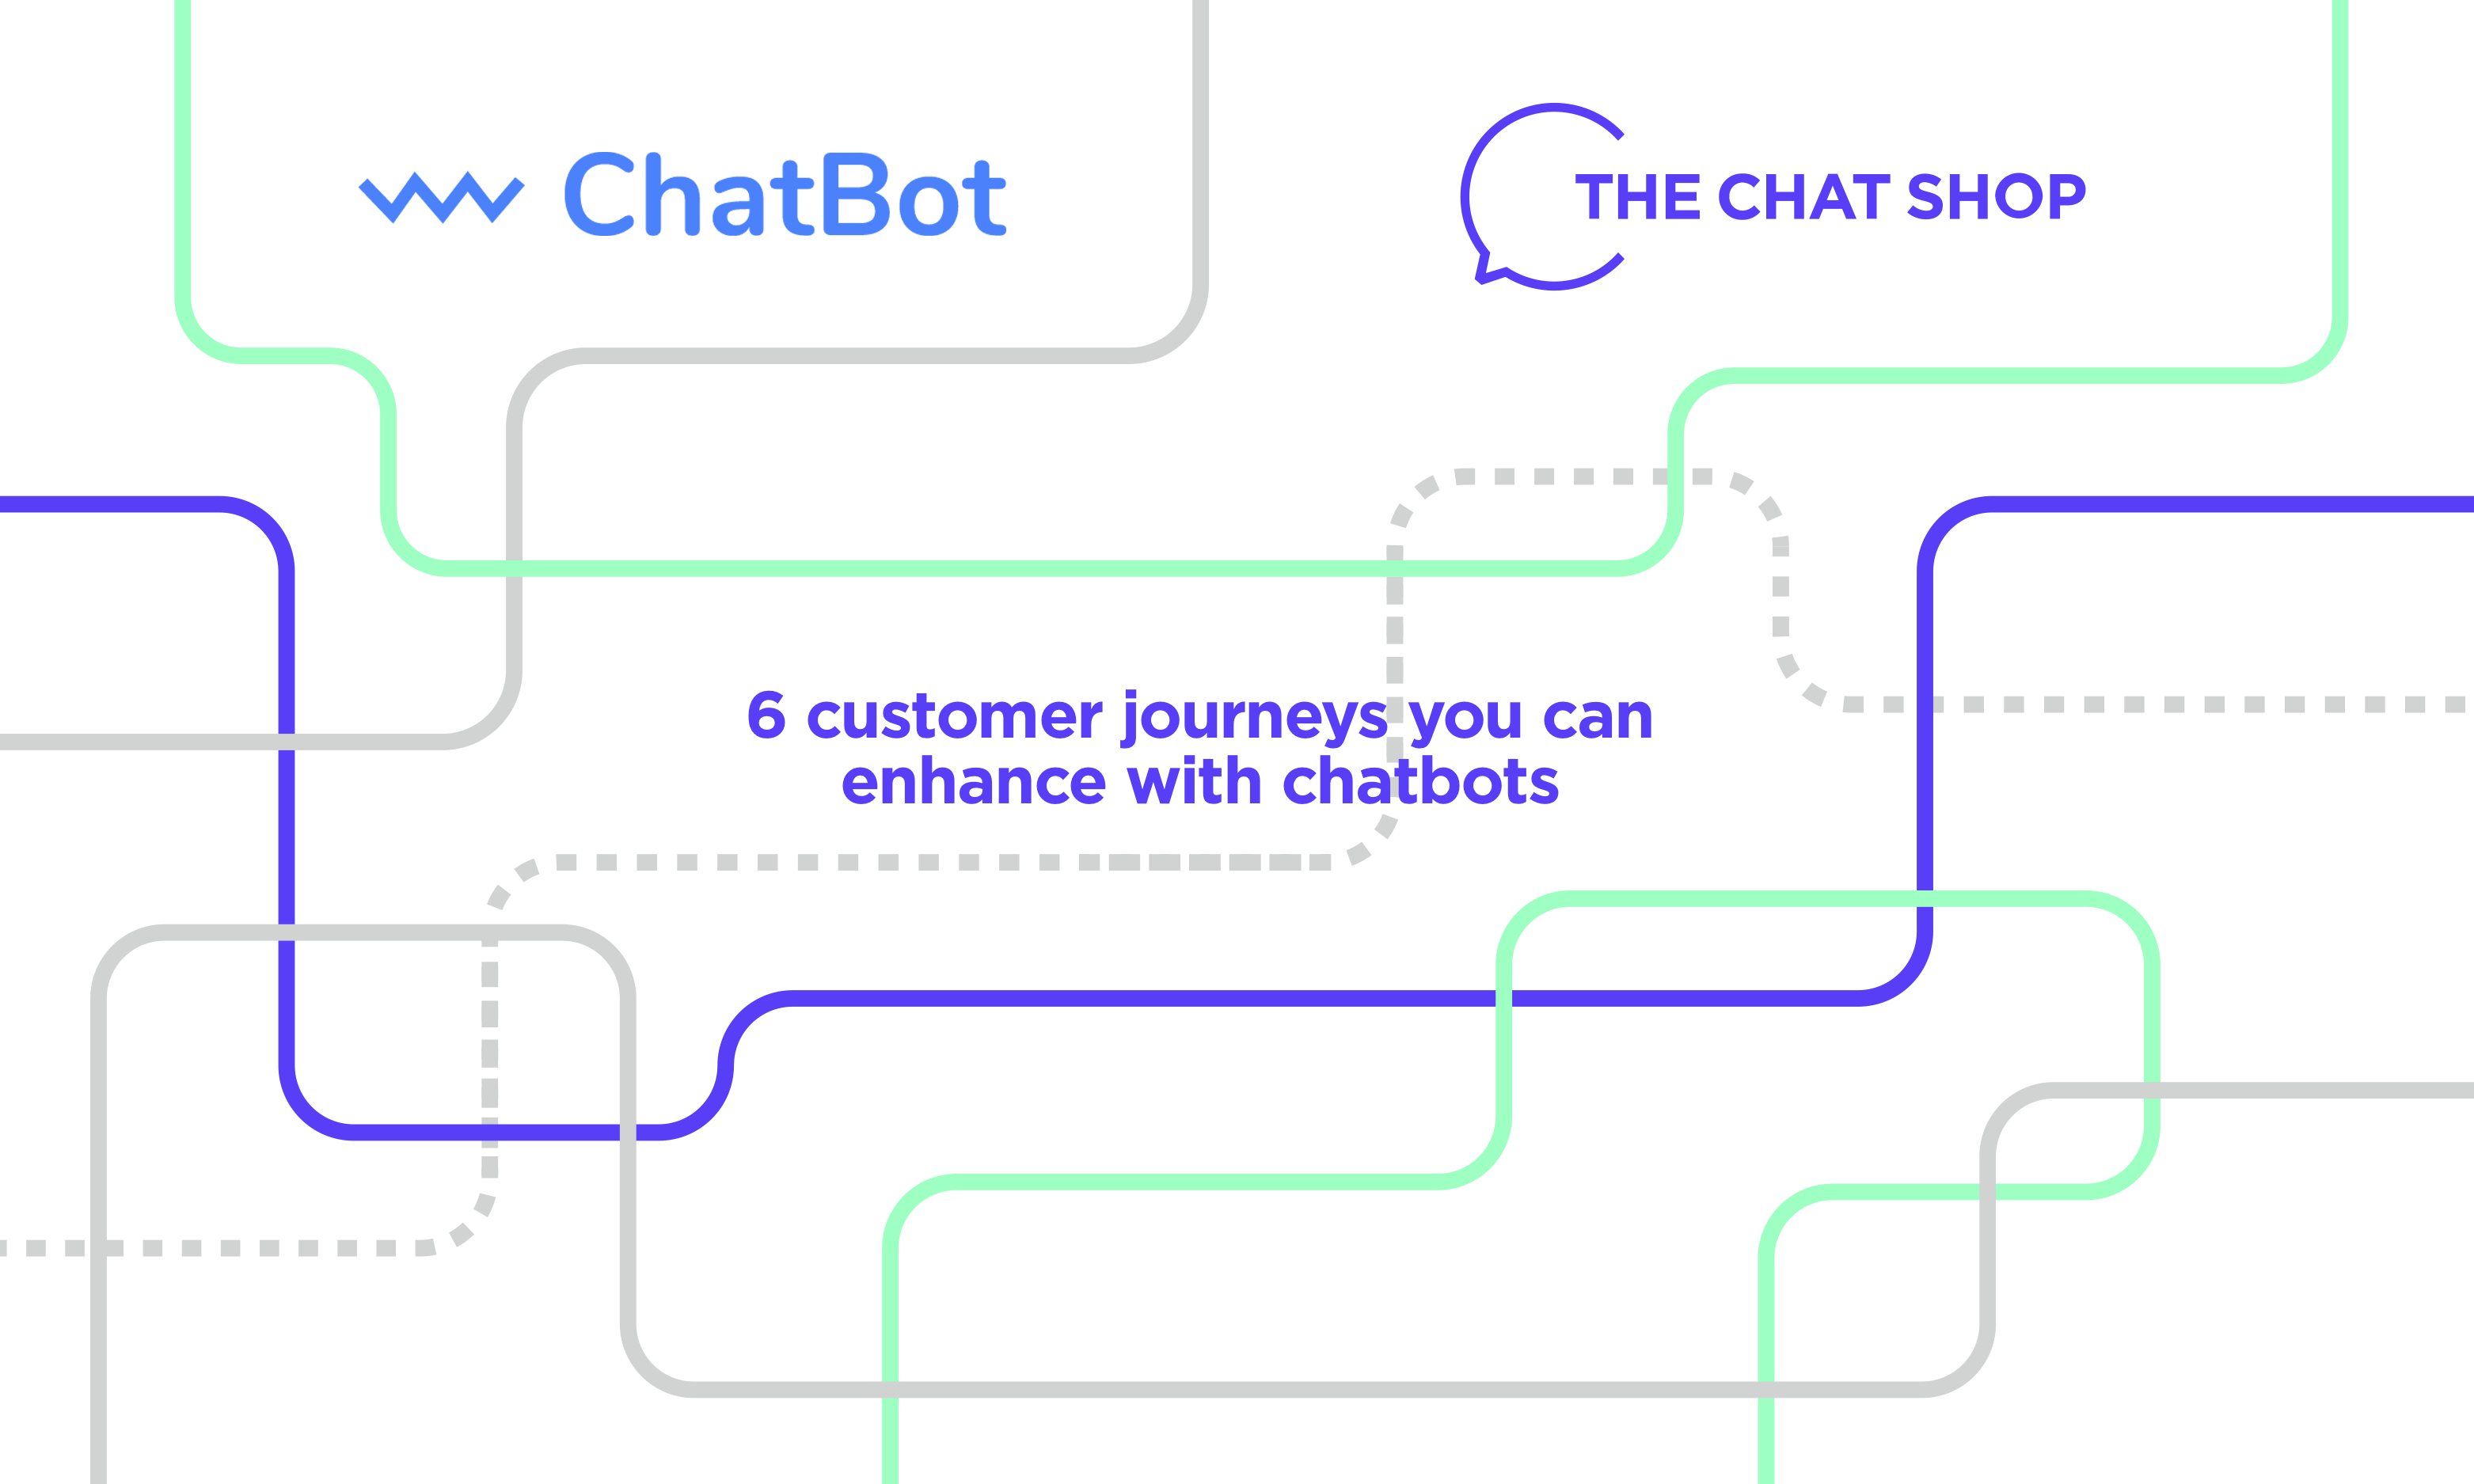 Header for 6 customer journeys you can enhance with chatbots